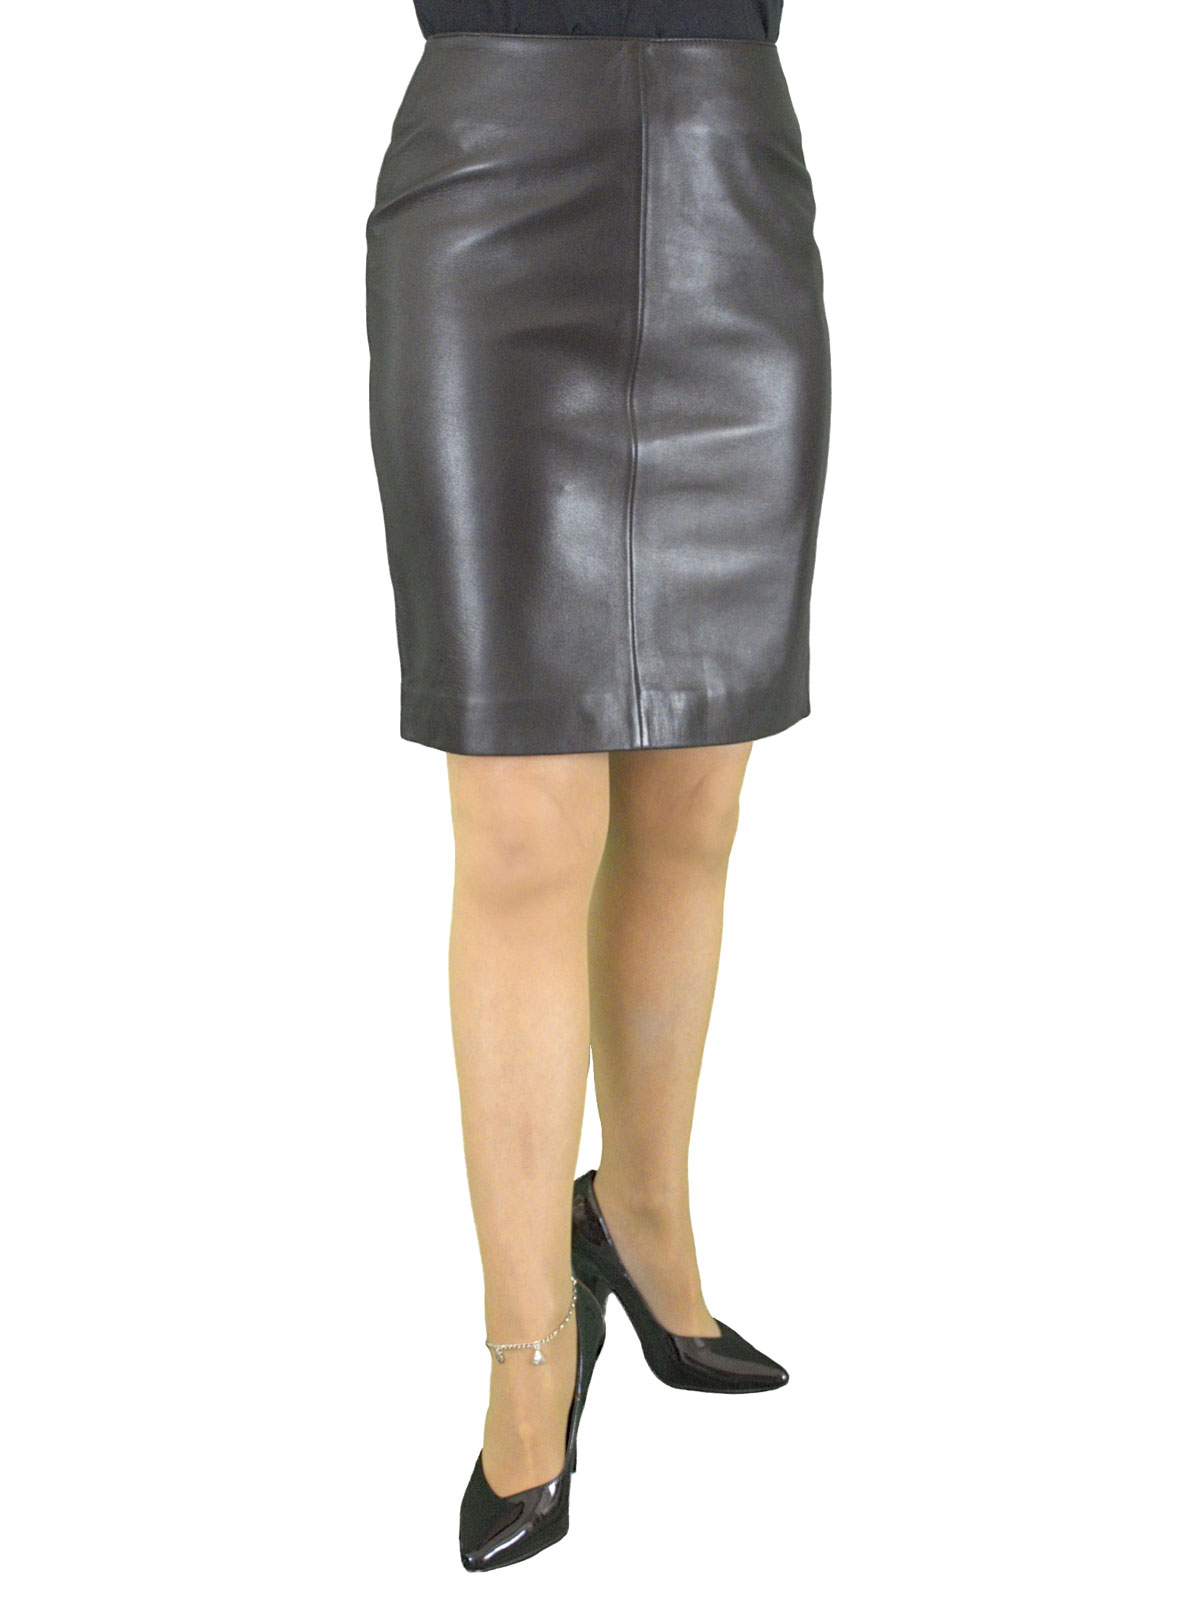 Luxury Leather Pencil Skirt Above Knee 19in Length Tout Ensemble